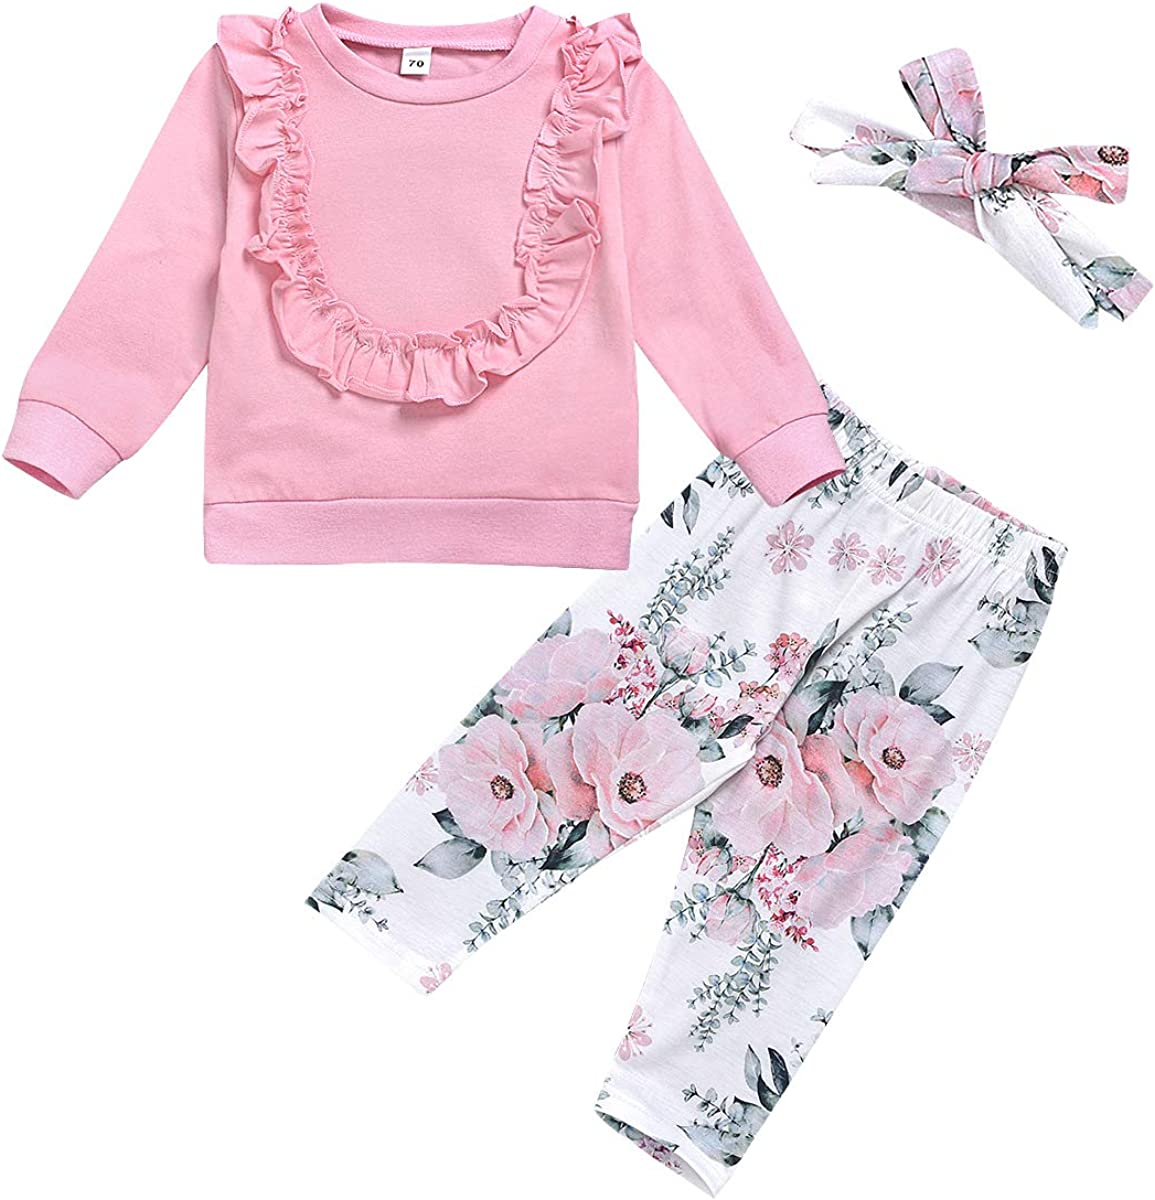 AmzBarley Newborn Baby Girl Clothes Long Sleeve Tops Floral Pants with Headband Outfit Set Autumn Winter Outerwear